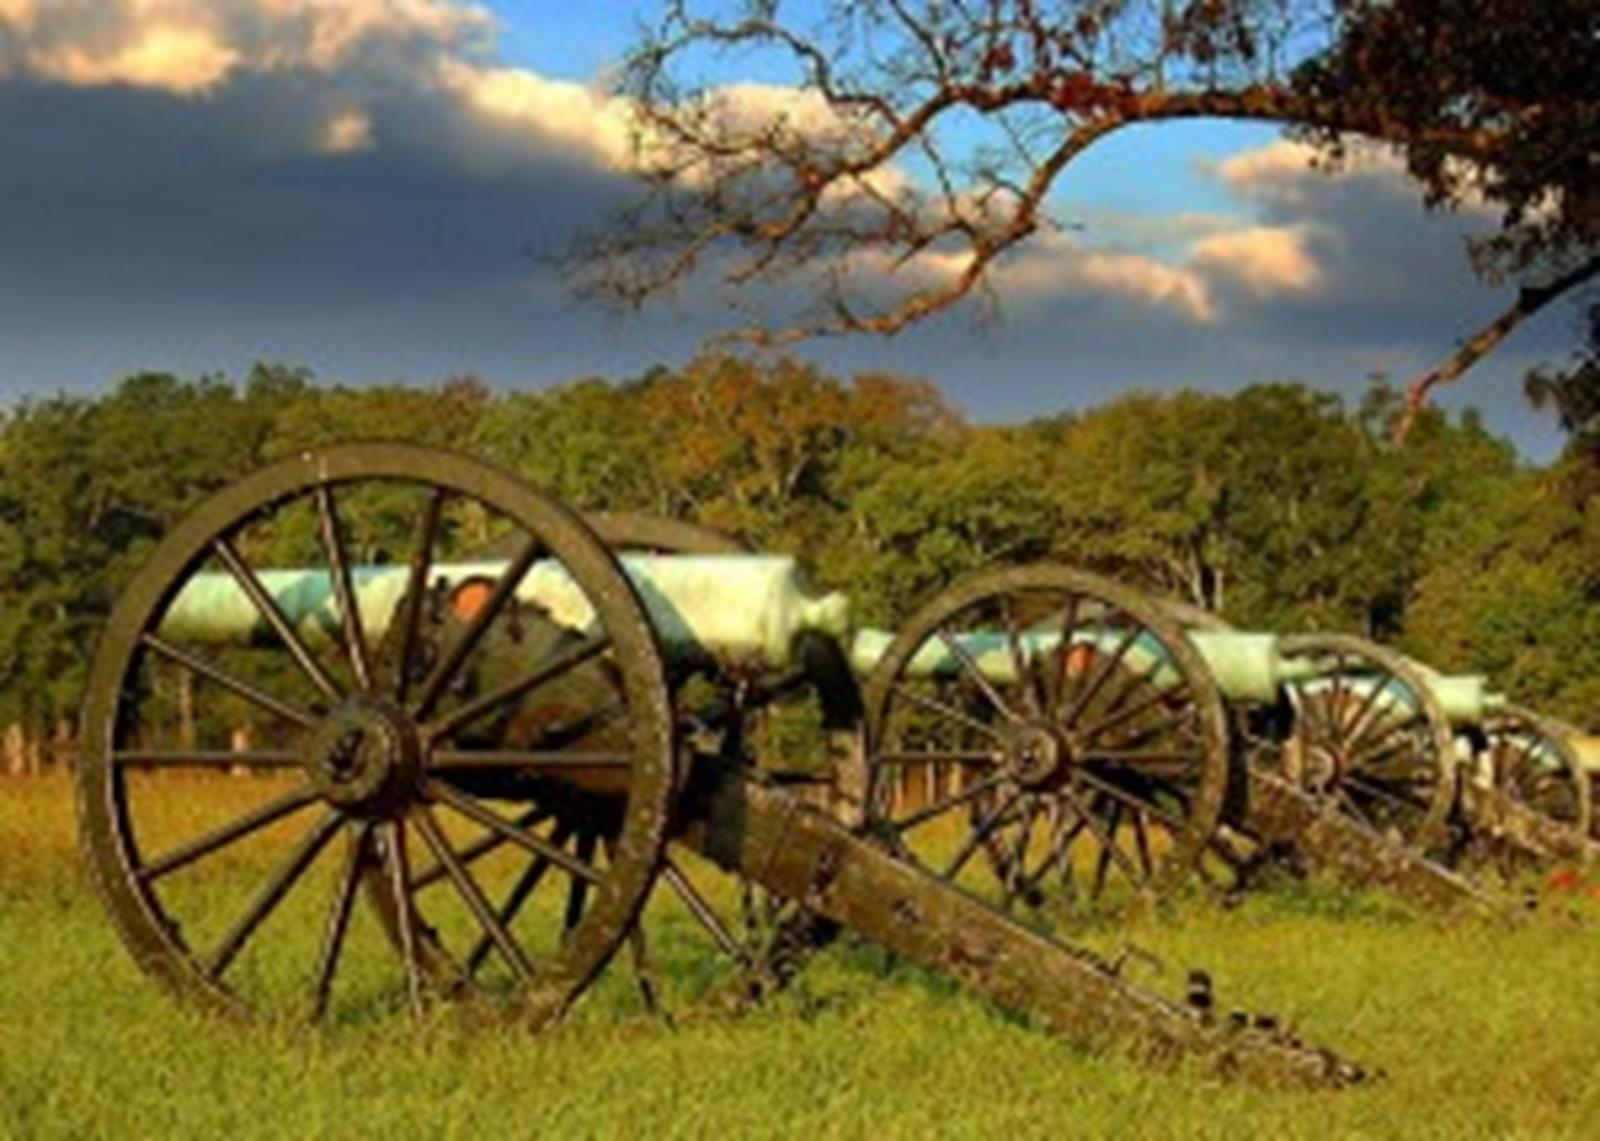 Cannon Row in Chickamauga and Chattanooga National Military Park